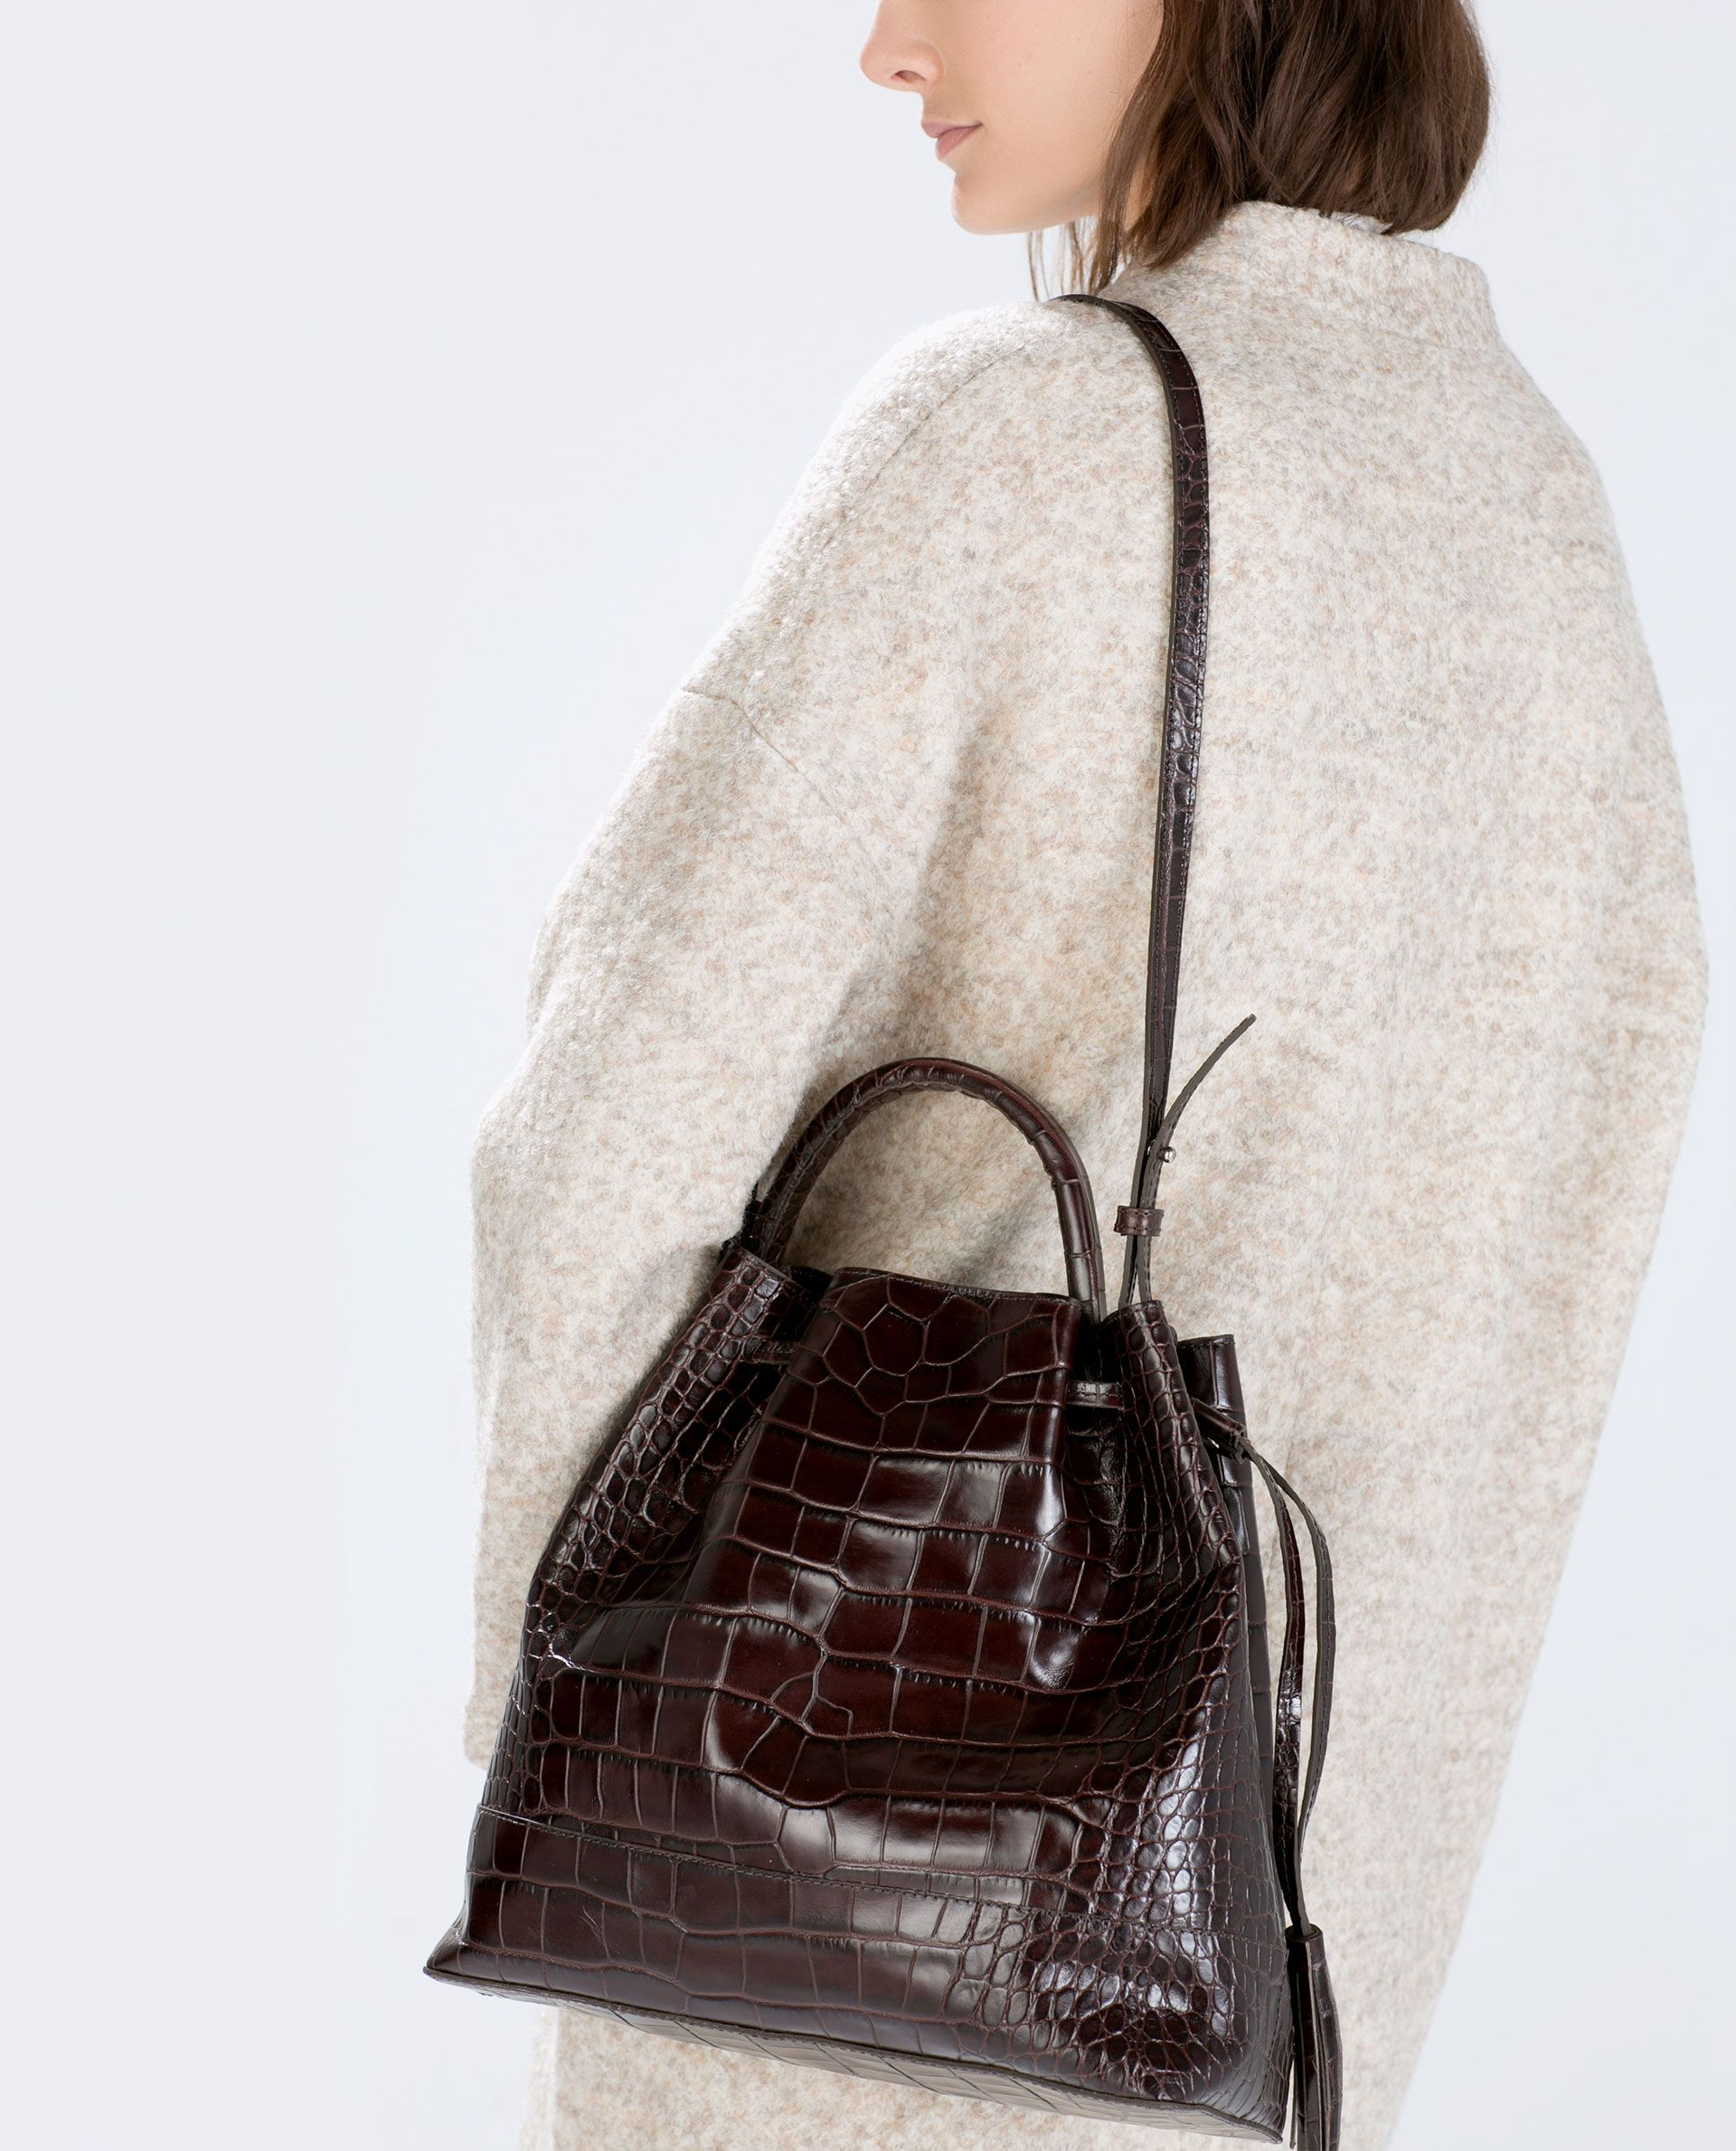 c9e76a72c2779b Image 2 of CROC LEATHER BUCKET BAG from Zara | Perdy purses | Zara ...